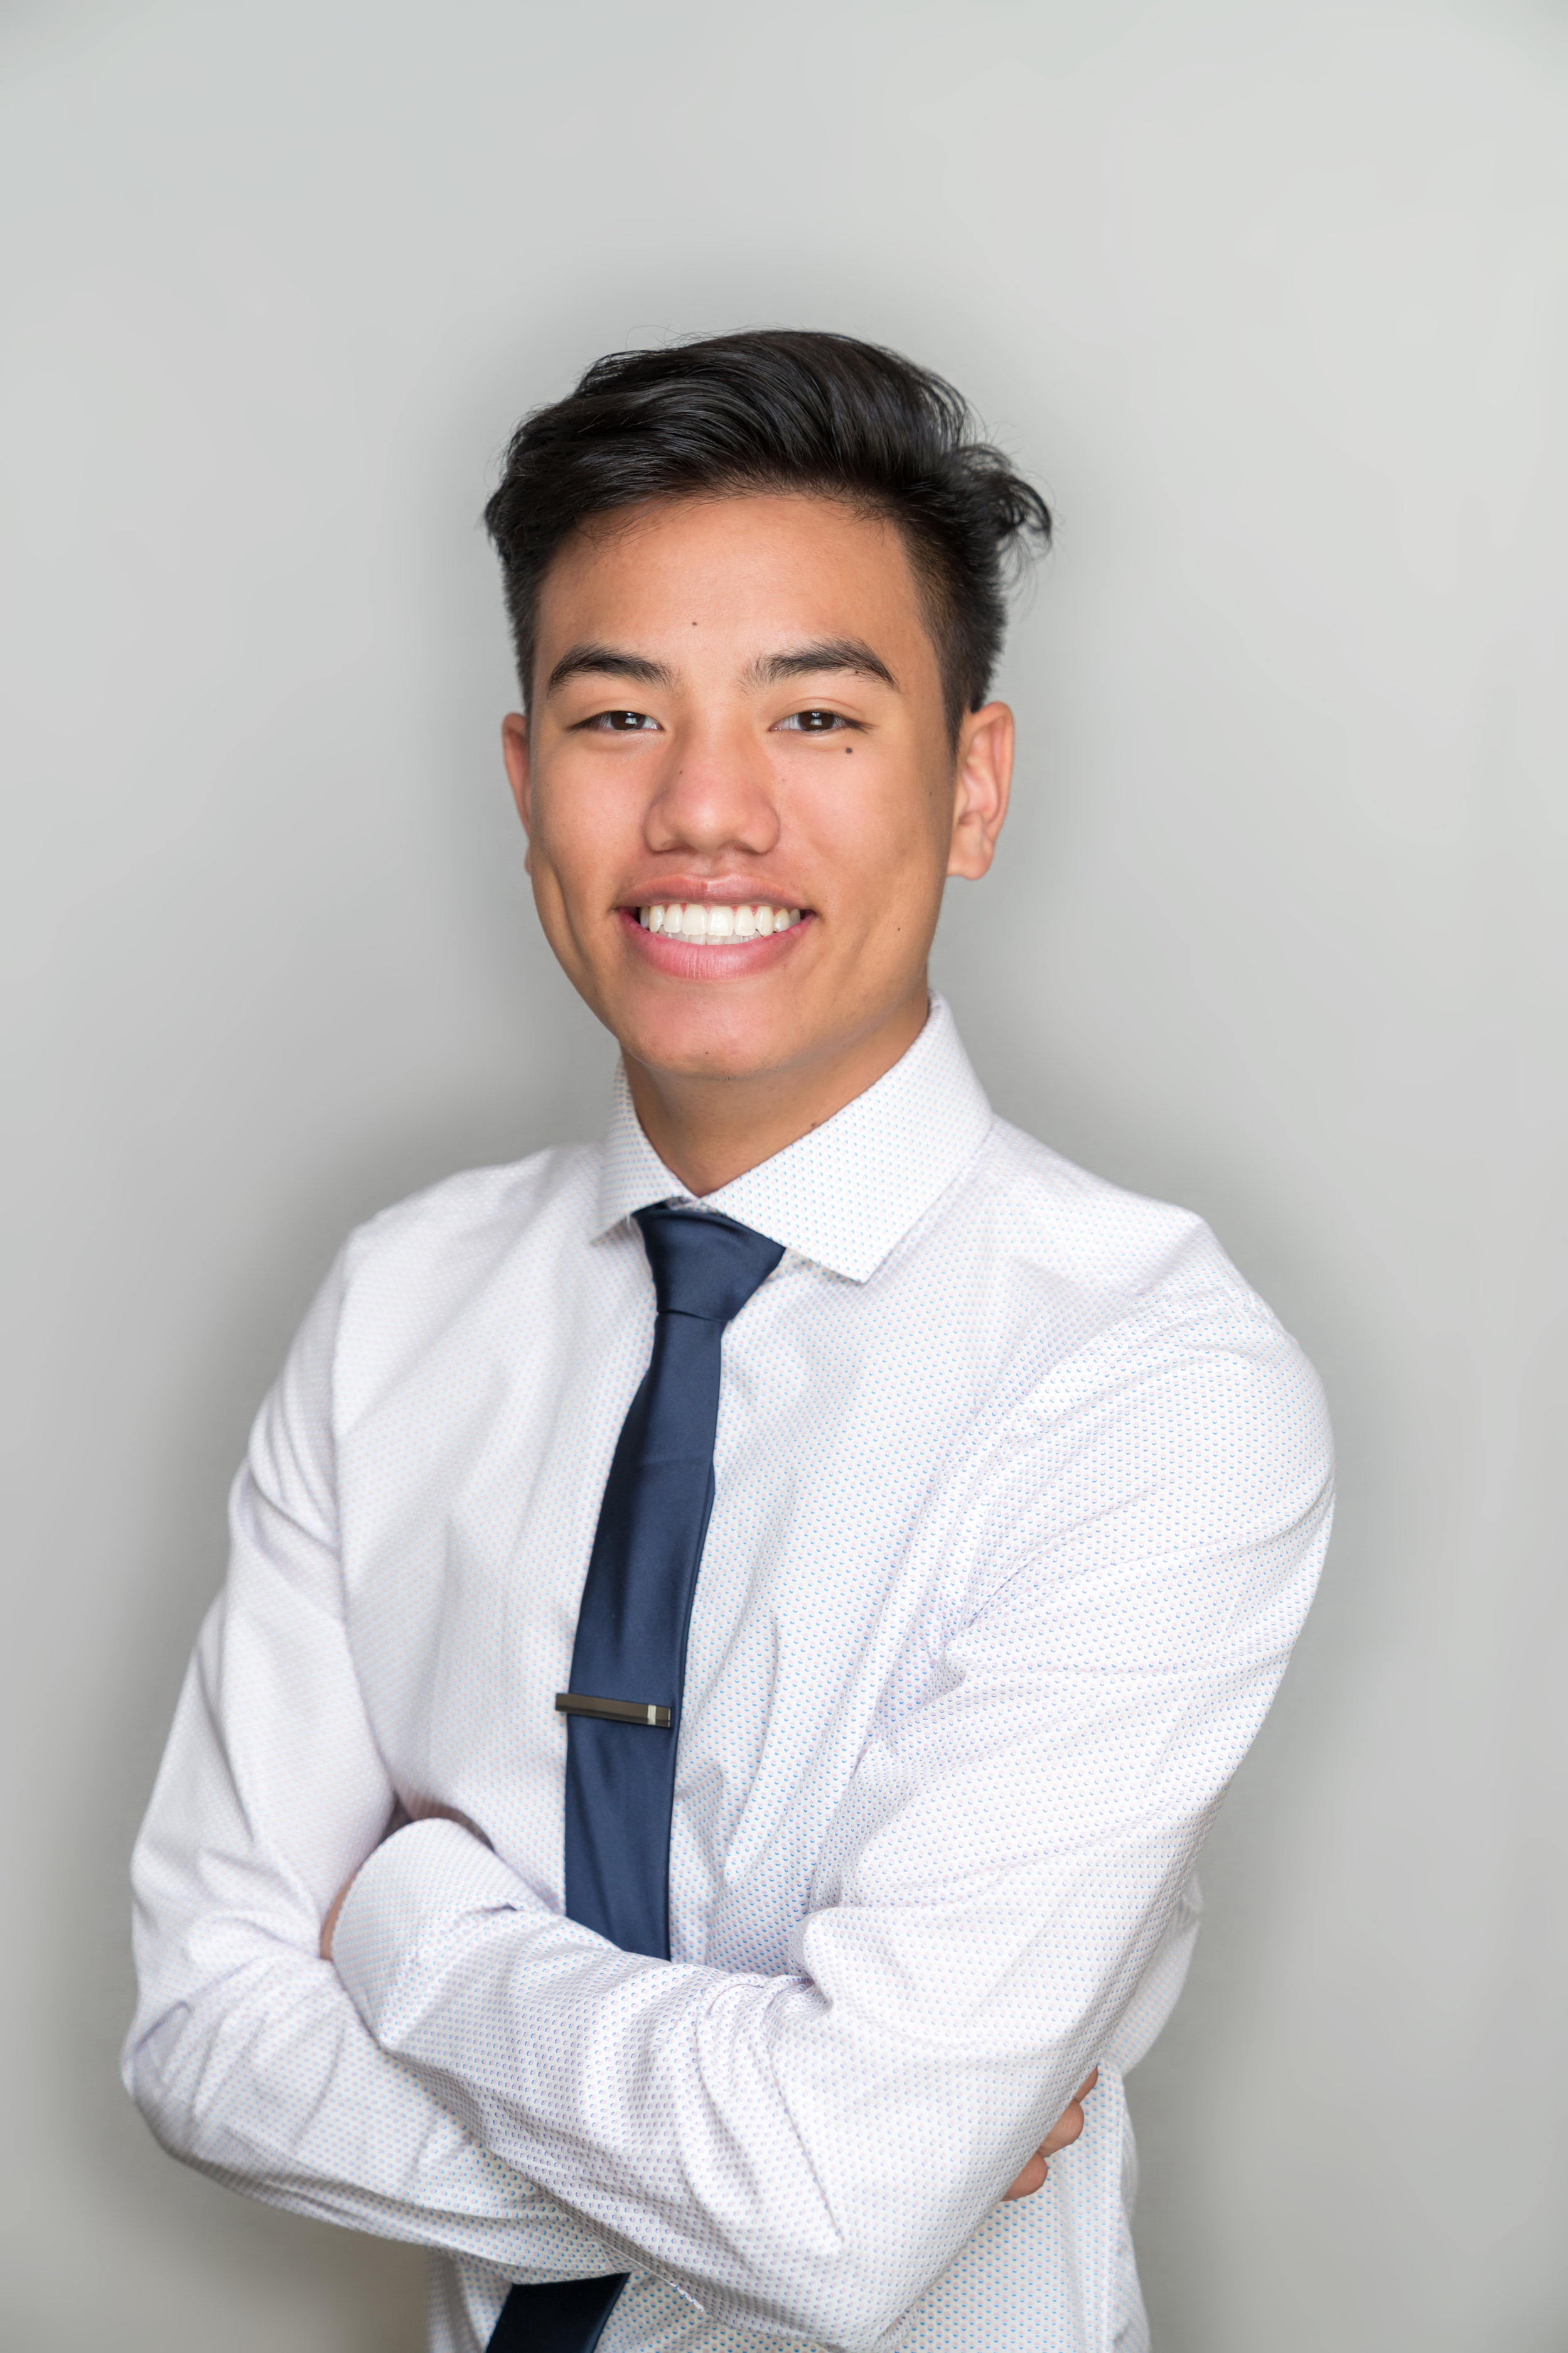 Austin Nguyen   Major: Microbiology   Career Goal: Anesthesiologist